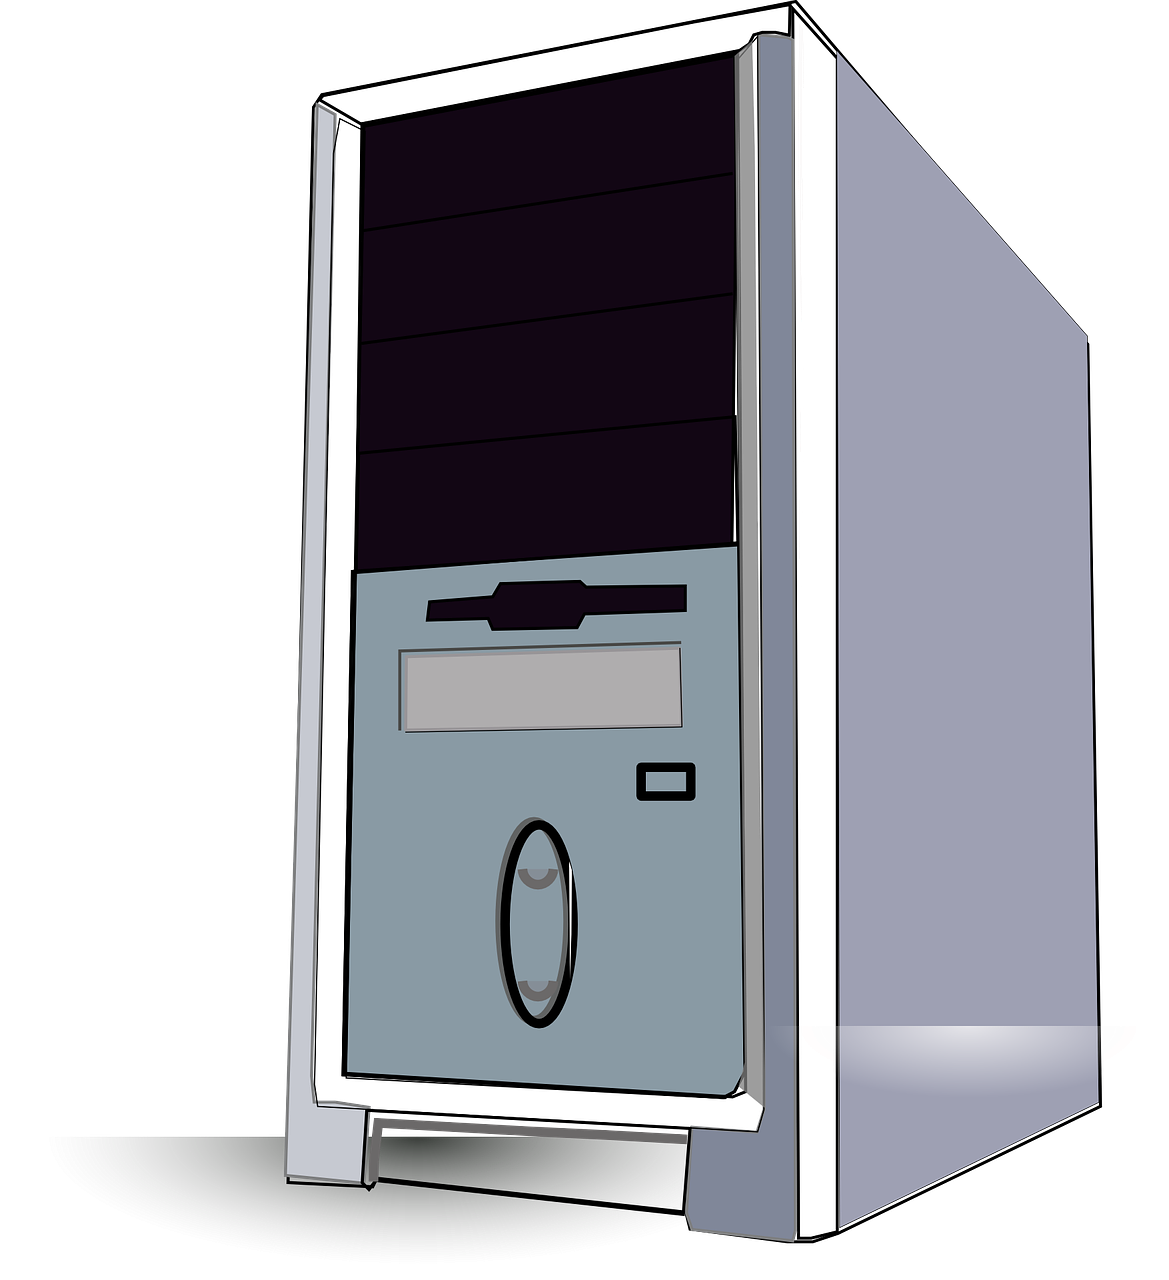 Pc clipart old computer. Desktop filedesktop tower vector